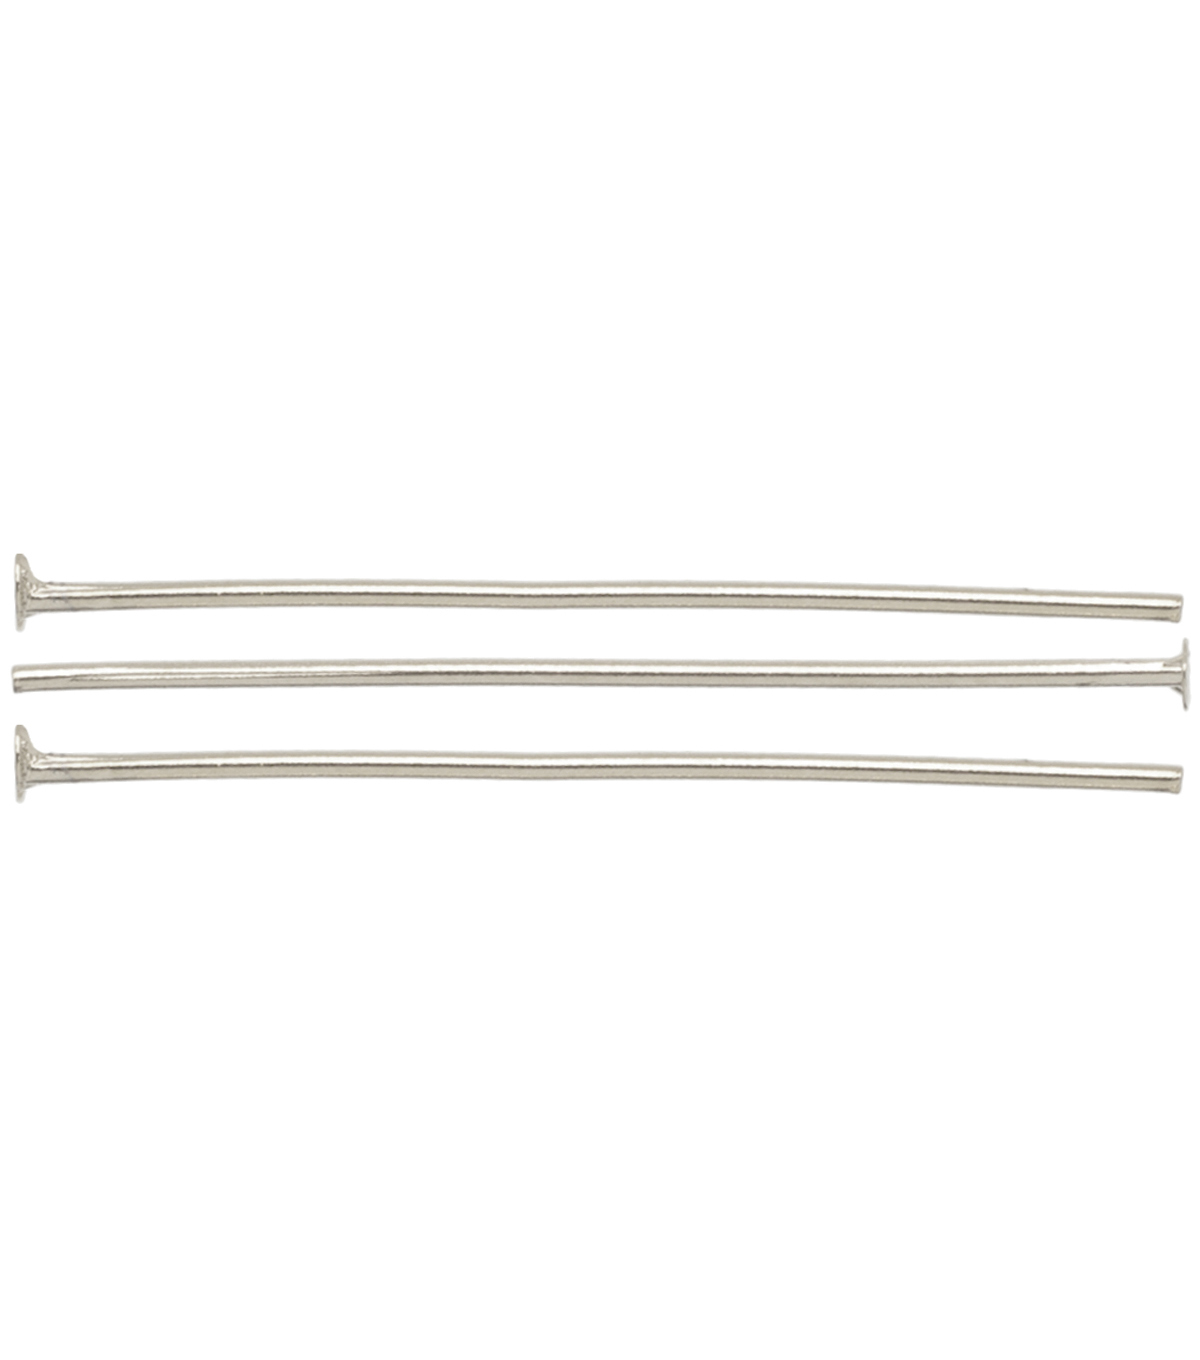 Silver Plated Metal Findings-25mm Head Pin 22/Pkg